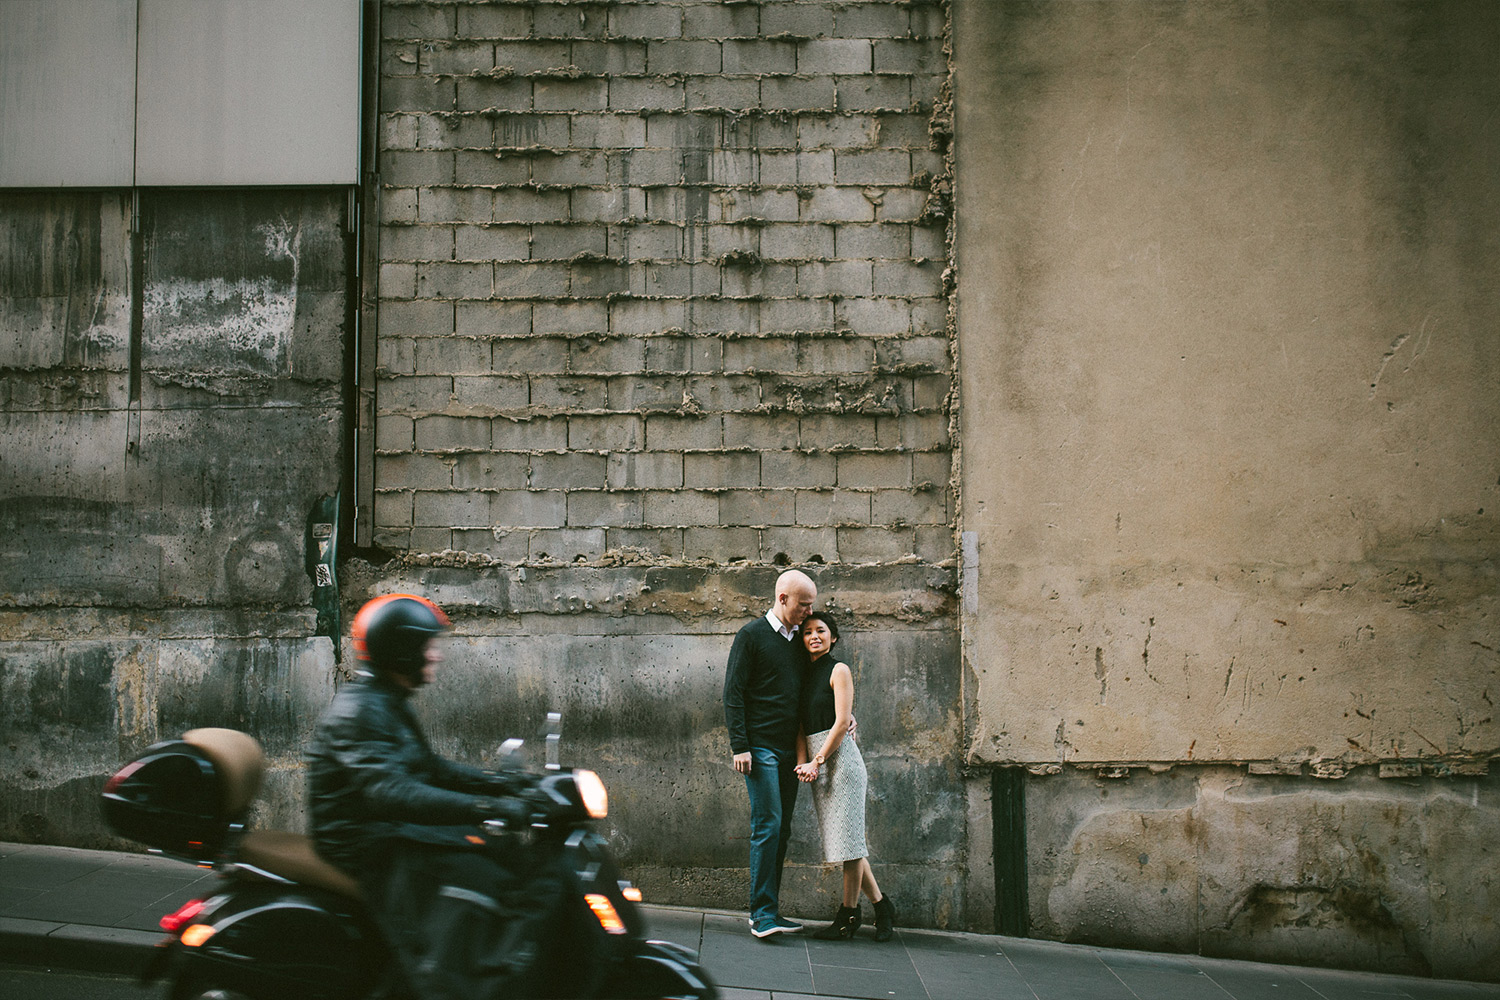 Elaine-Stephen-Engagement-Melbourne-Quirky-Urban-Engagement-Session-Wedding-Photography-15